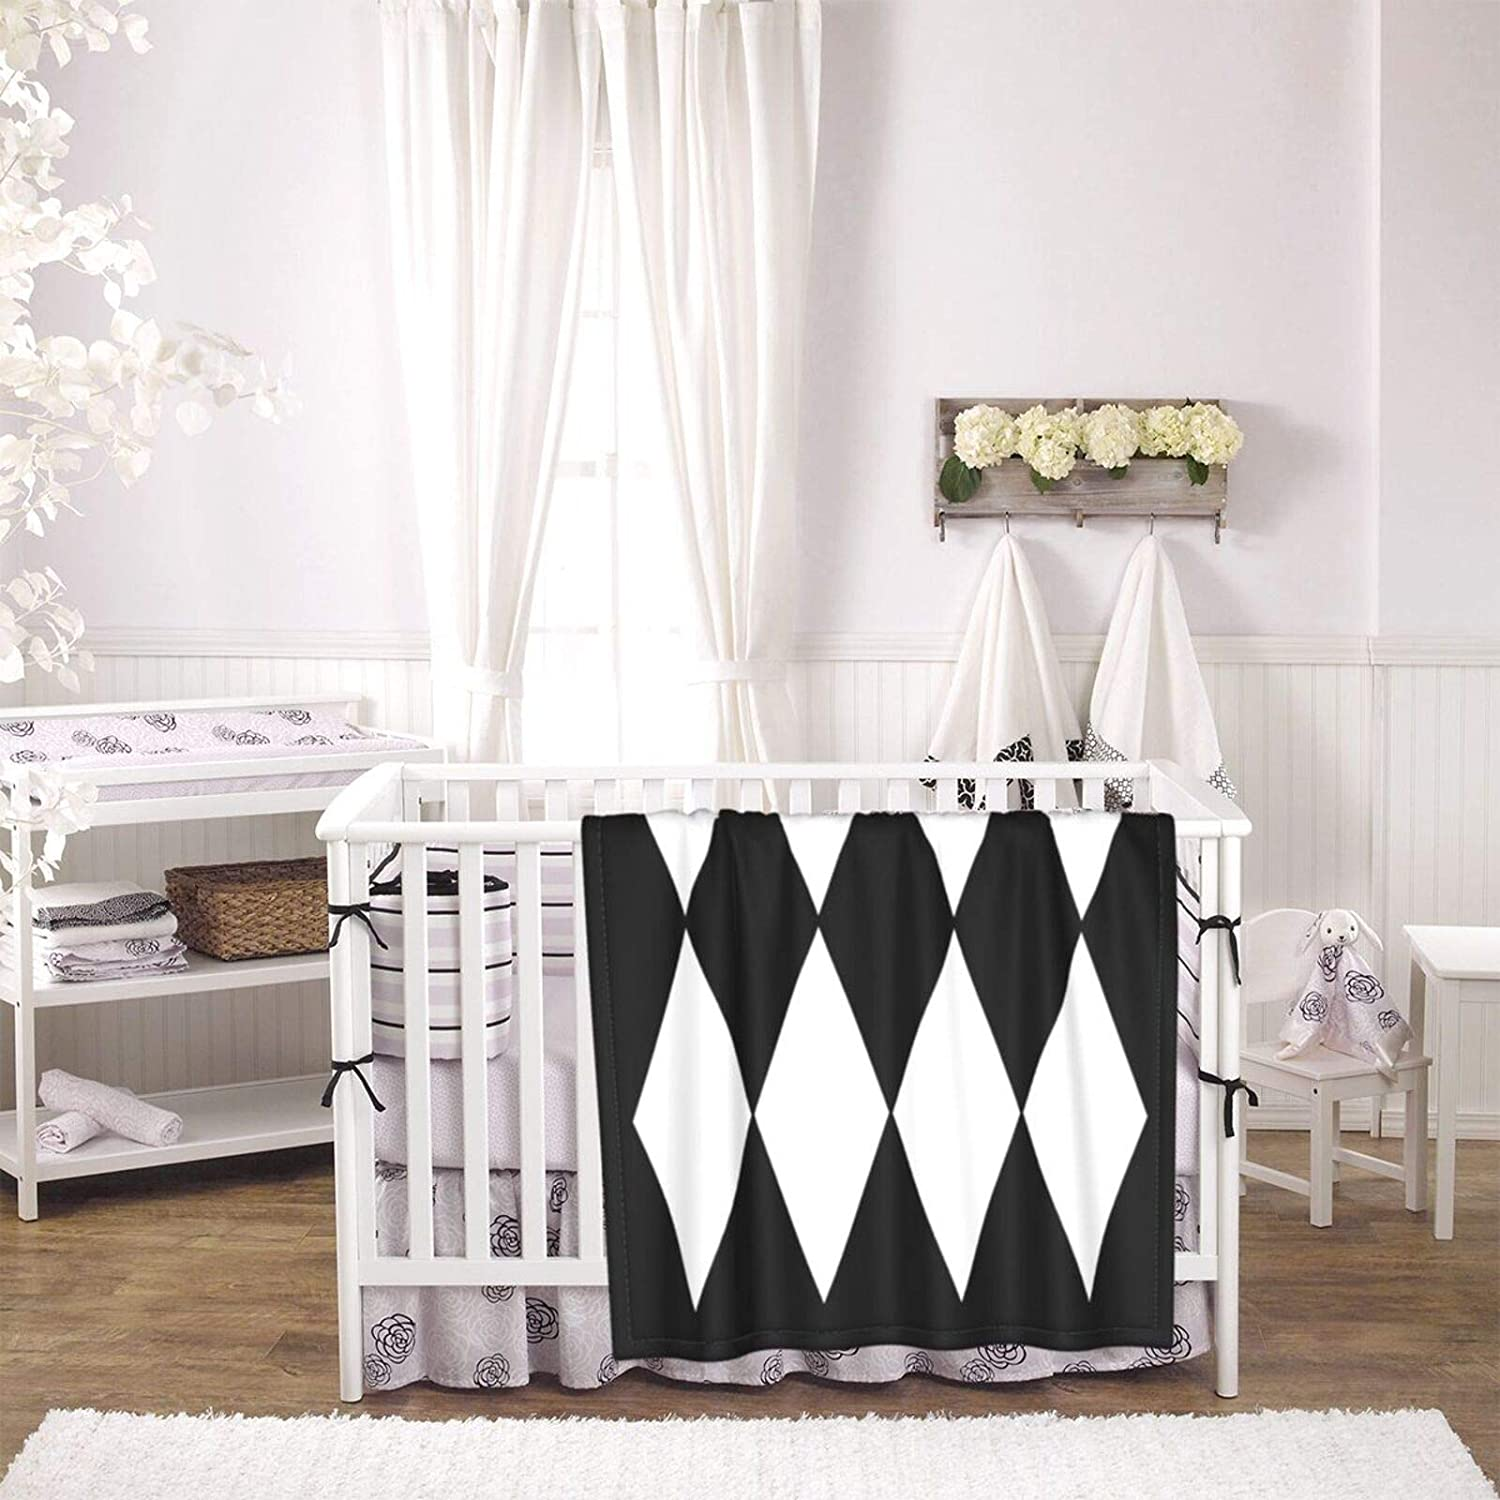 Large Black and White Harlequin Diamond Soft Baby Blankets Super Cozy Newborn Receiving Blanket Warm Nursery Bed Blankets Suitable for All Seasons